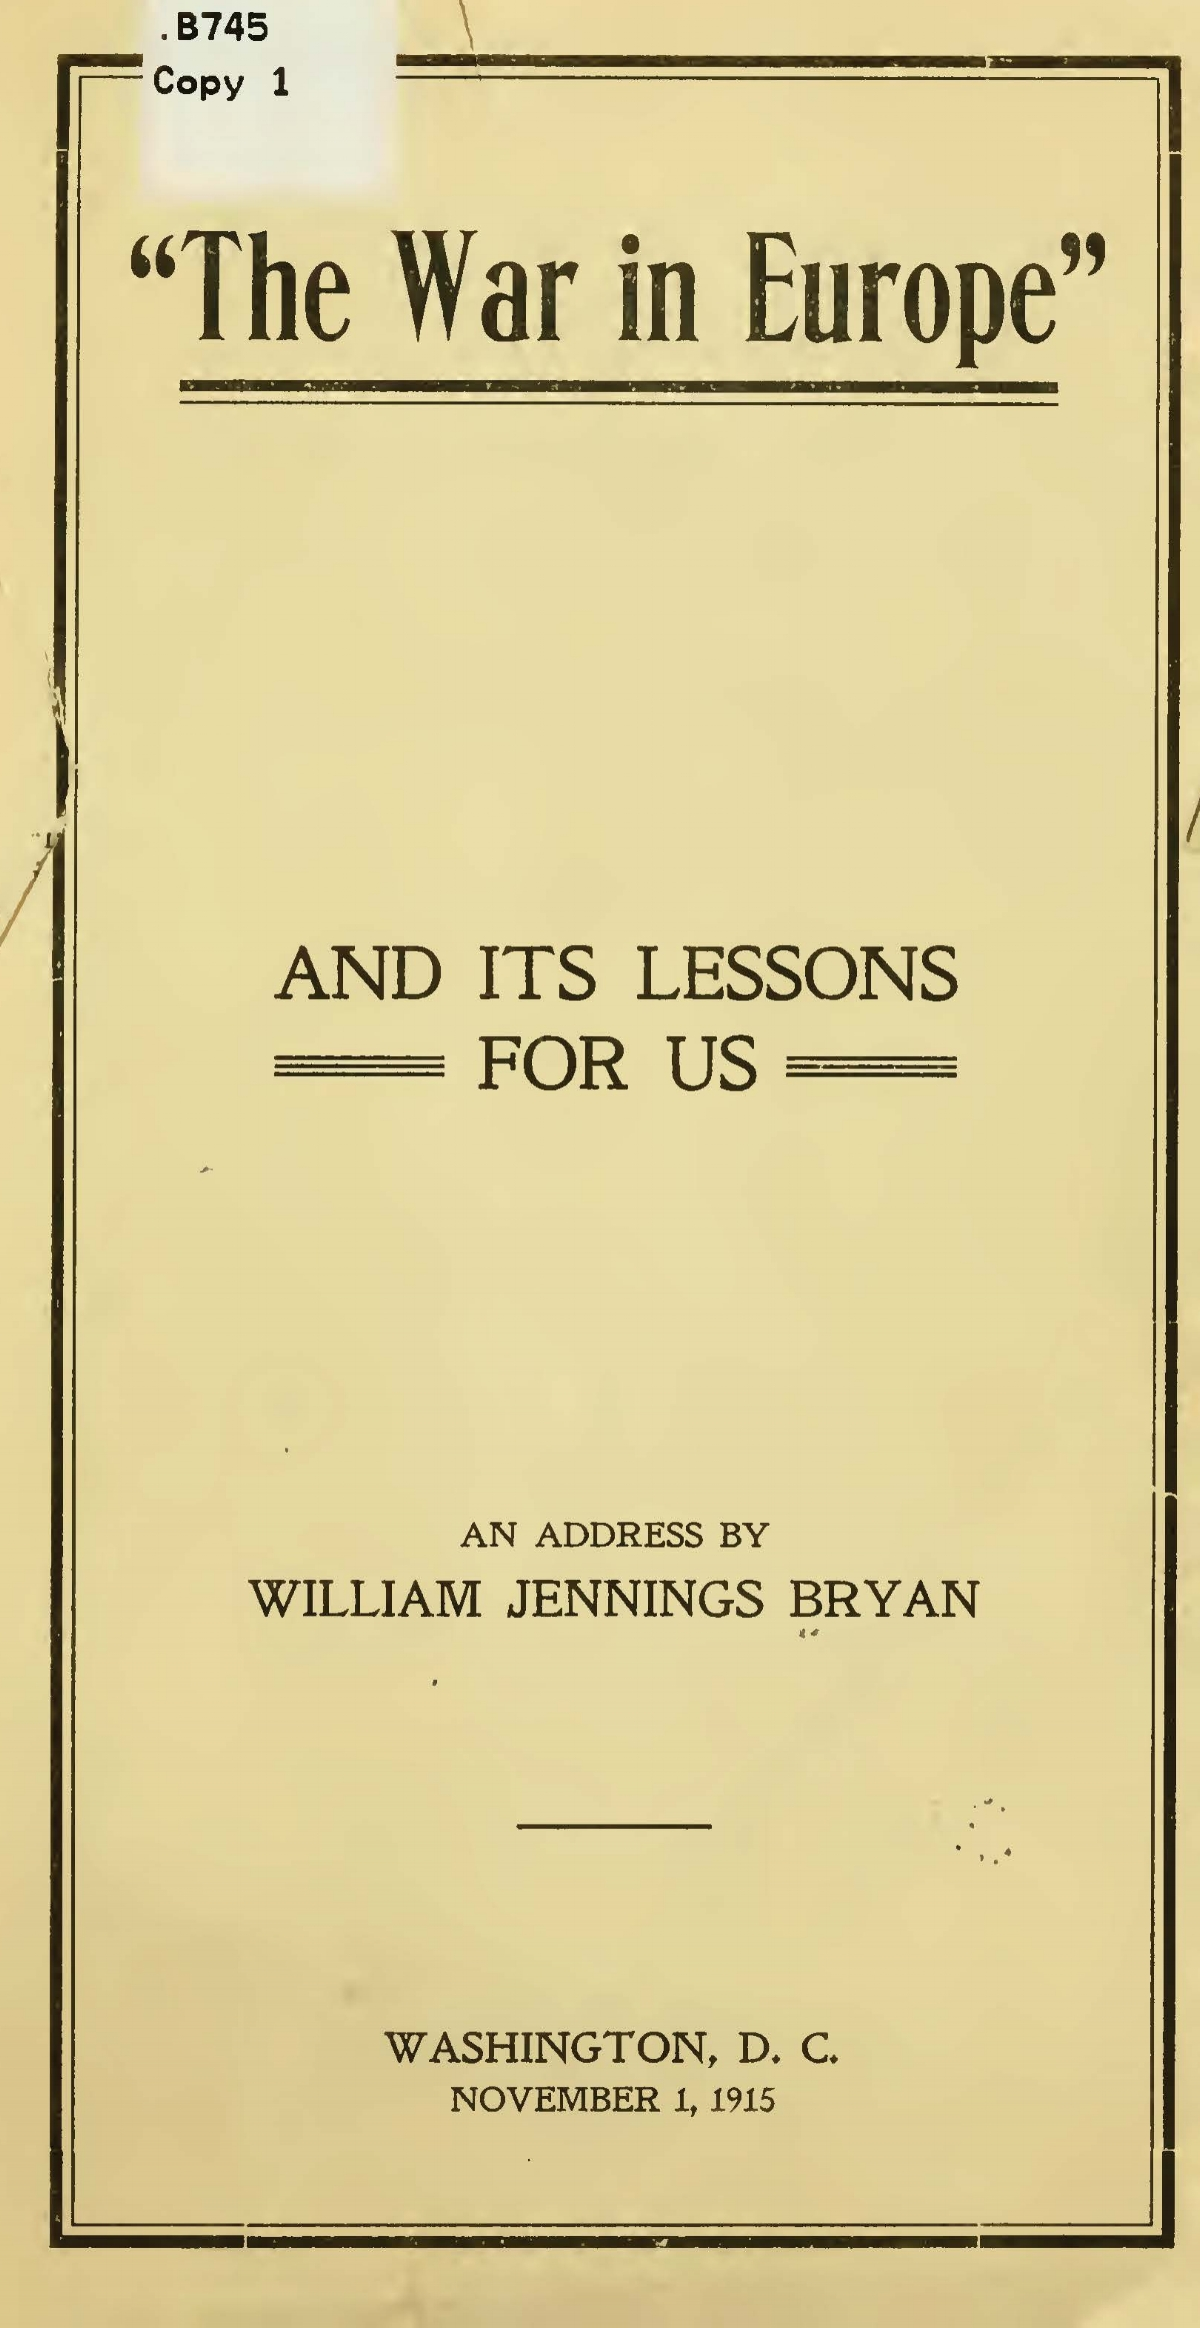 Bryan, Sr., William Jennings, The War in Europe Title Page.jpg